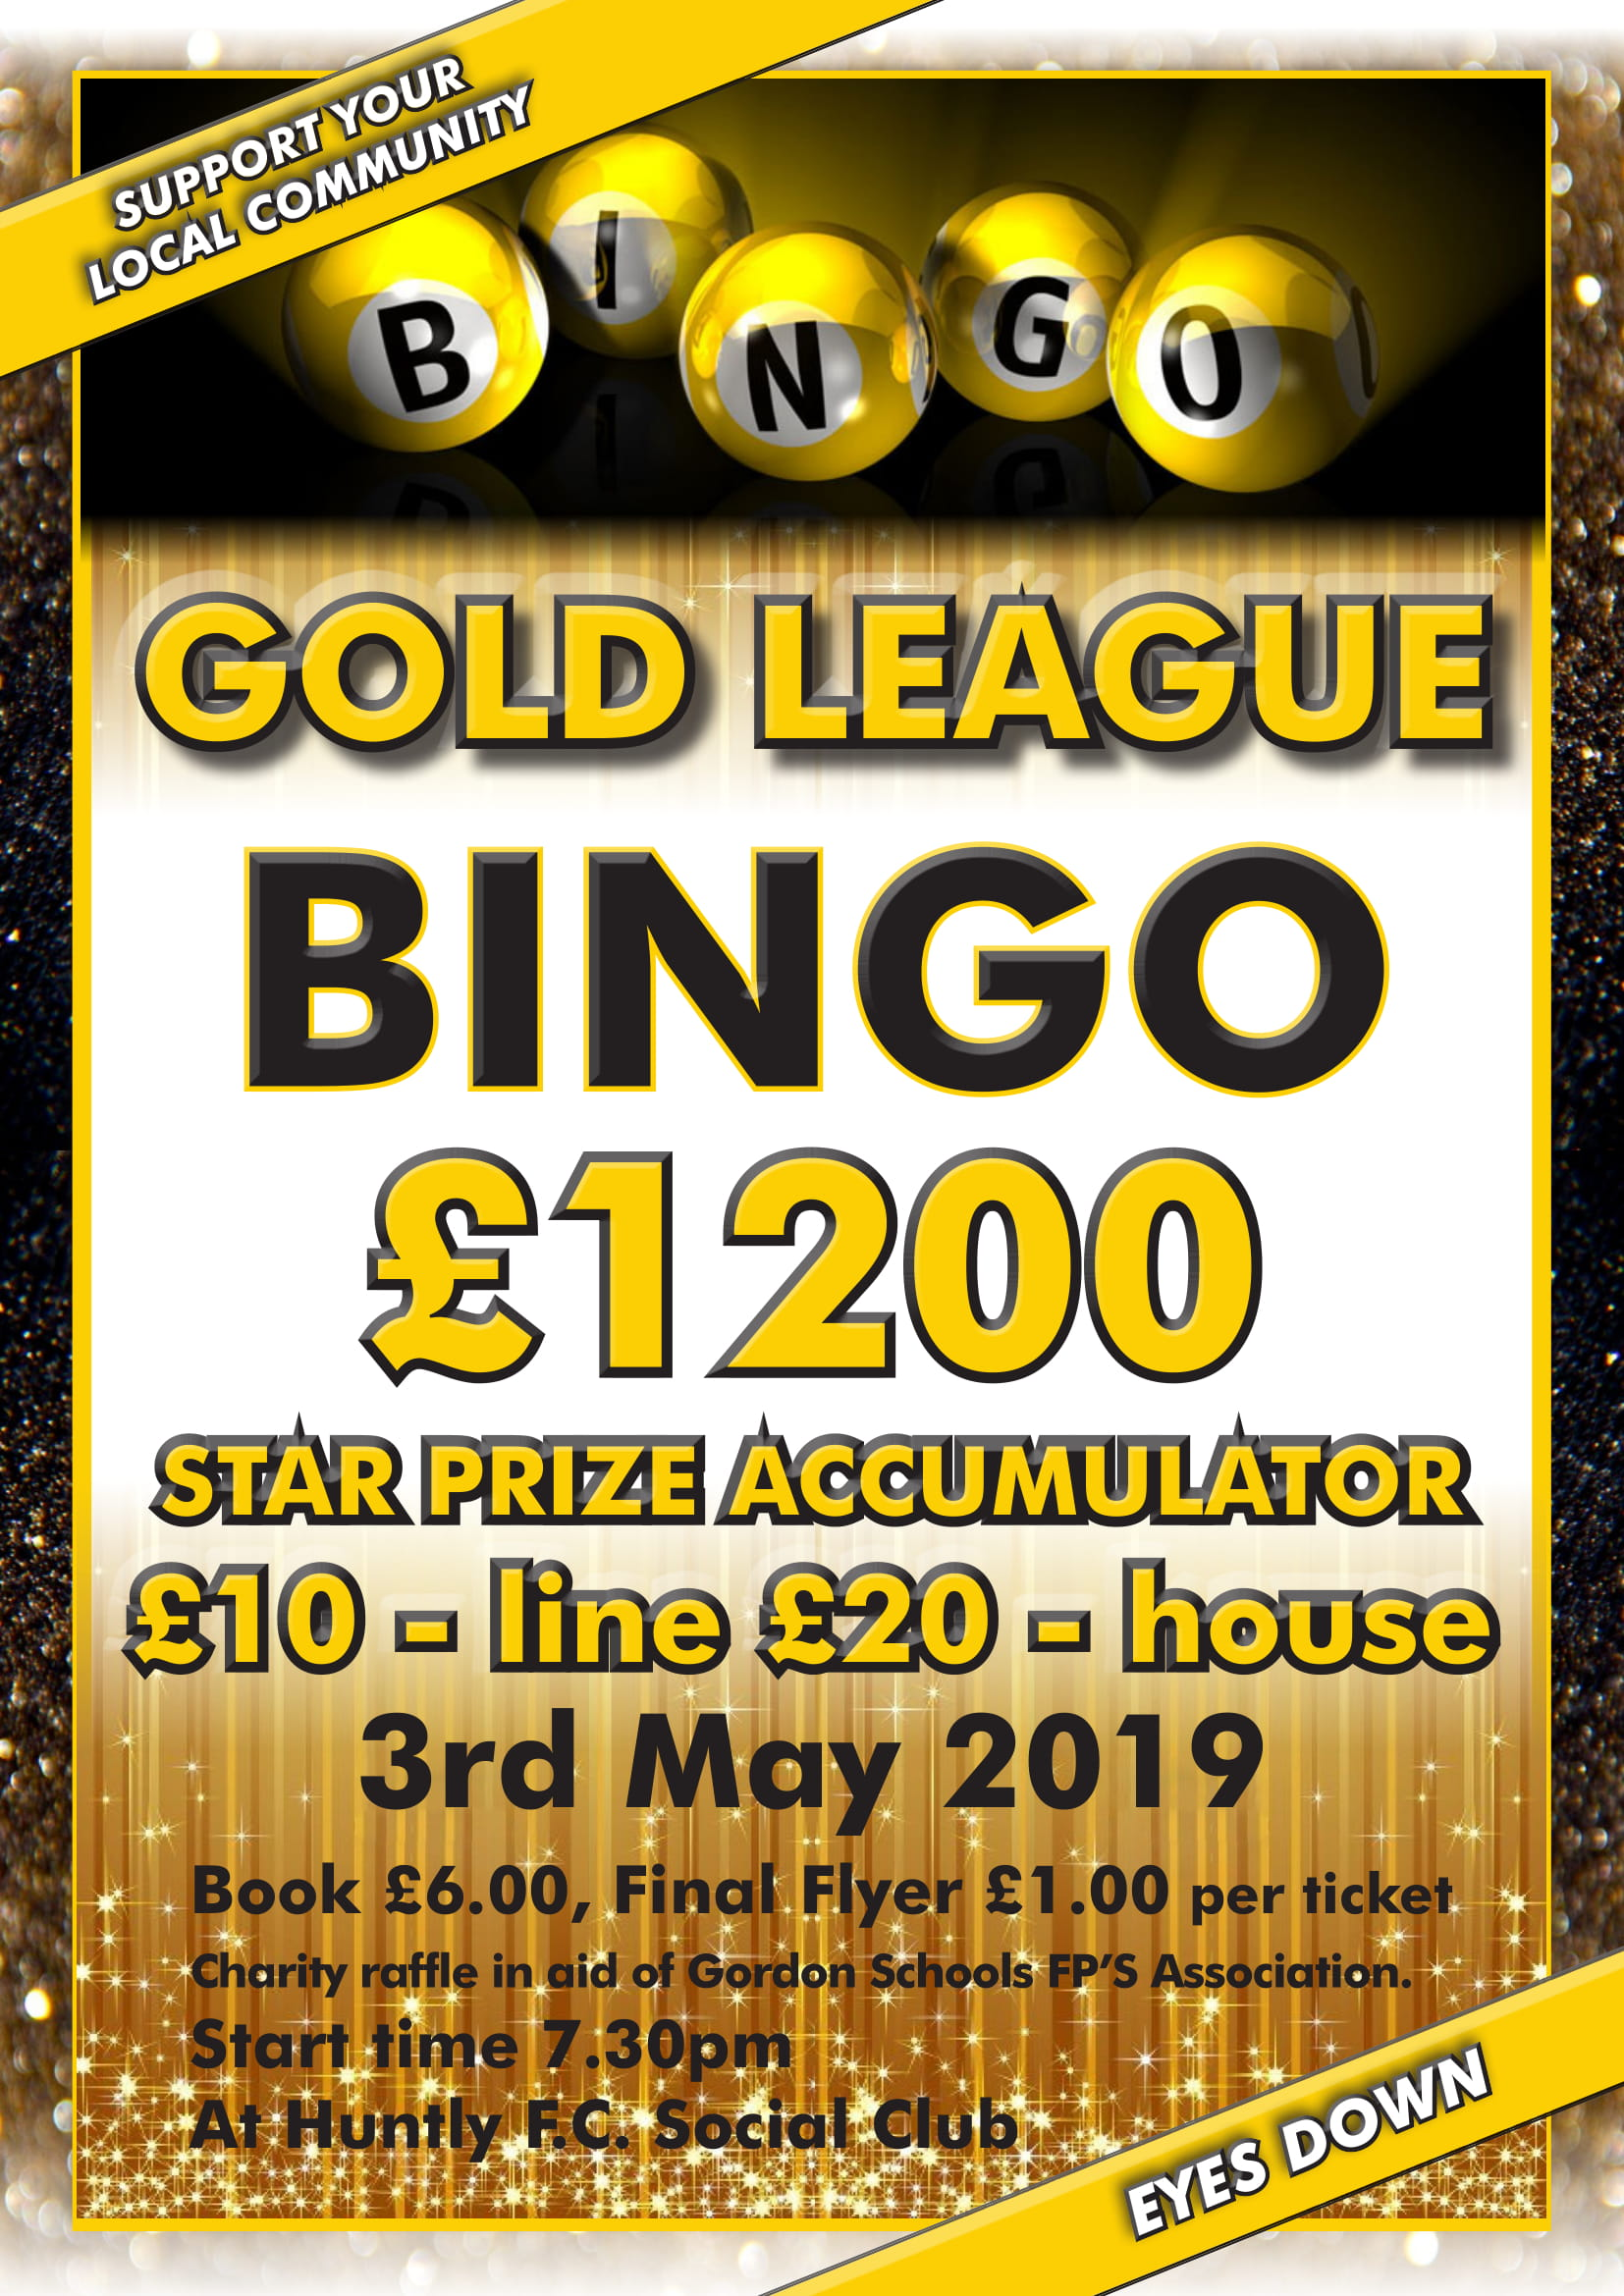 Gold League Bingo: £1200 star prize accumulator